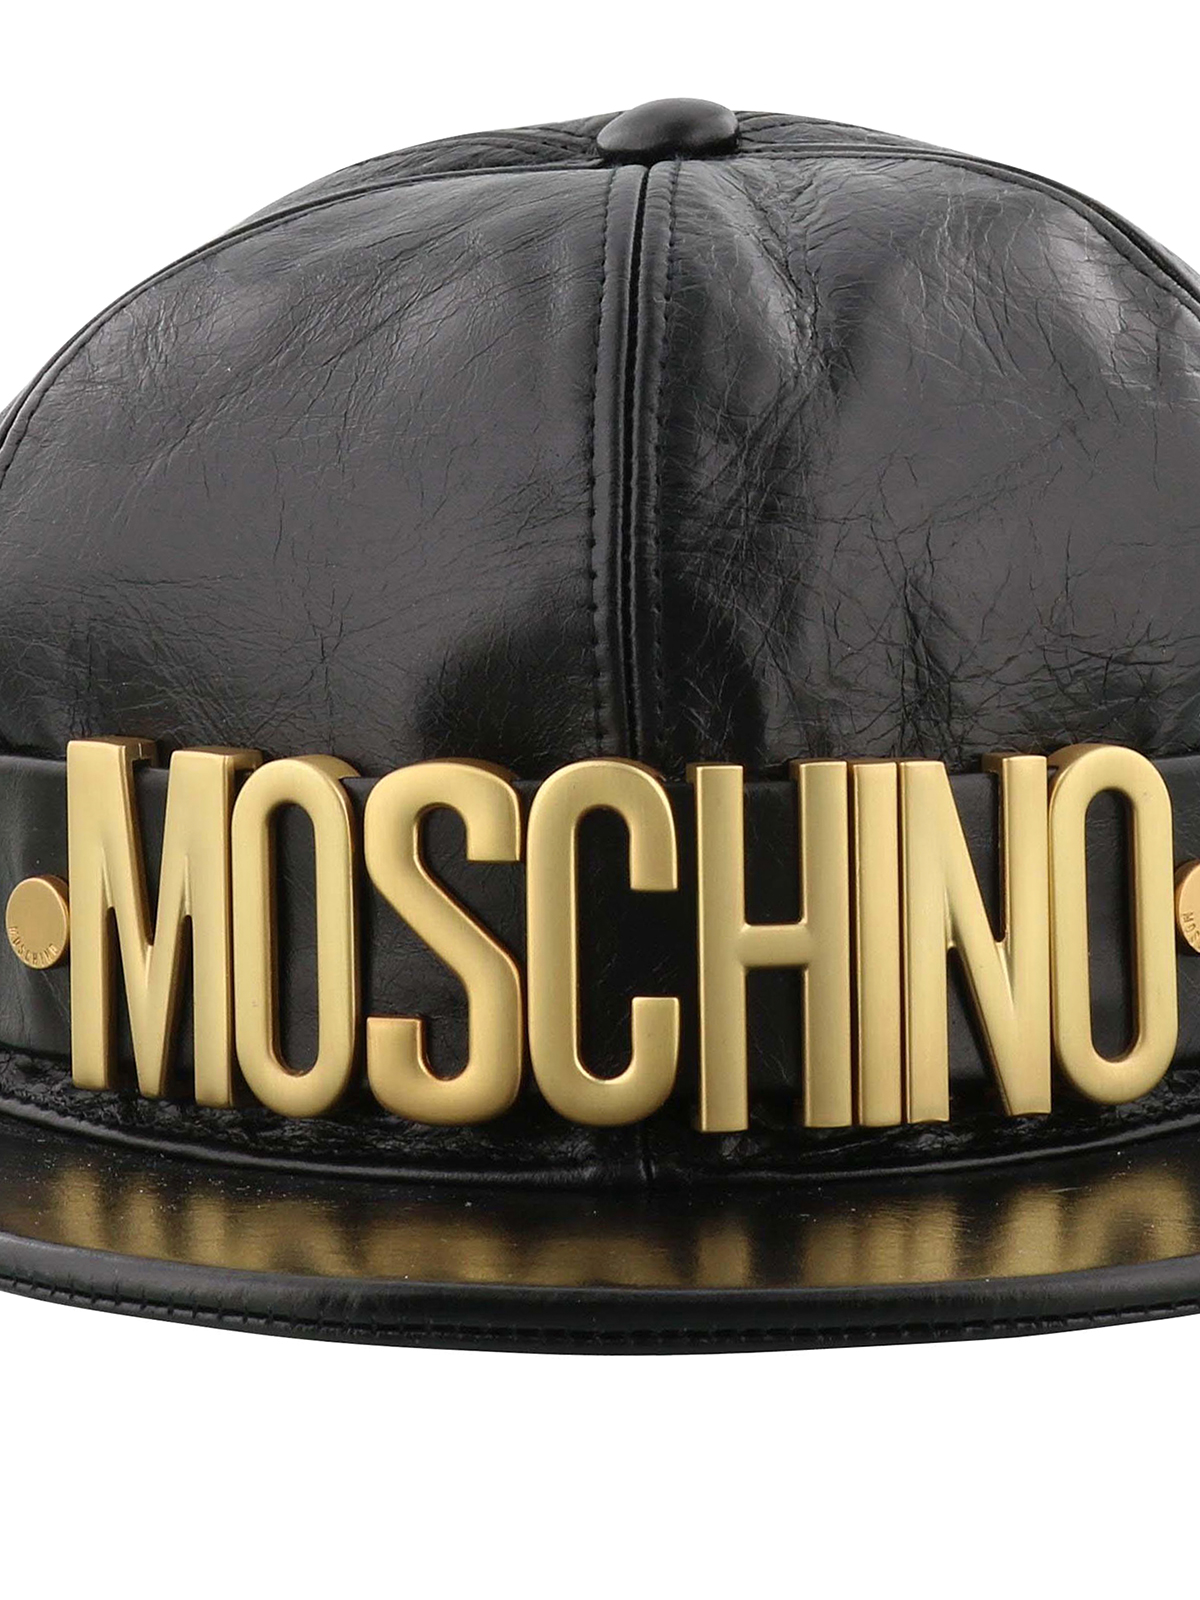 a220596a224 Gold-tone logo crackle leather baseball cap shop online  MOSCHINO · MOSCHINO   hats   caps ...